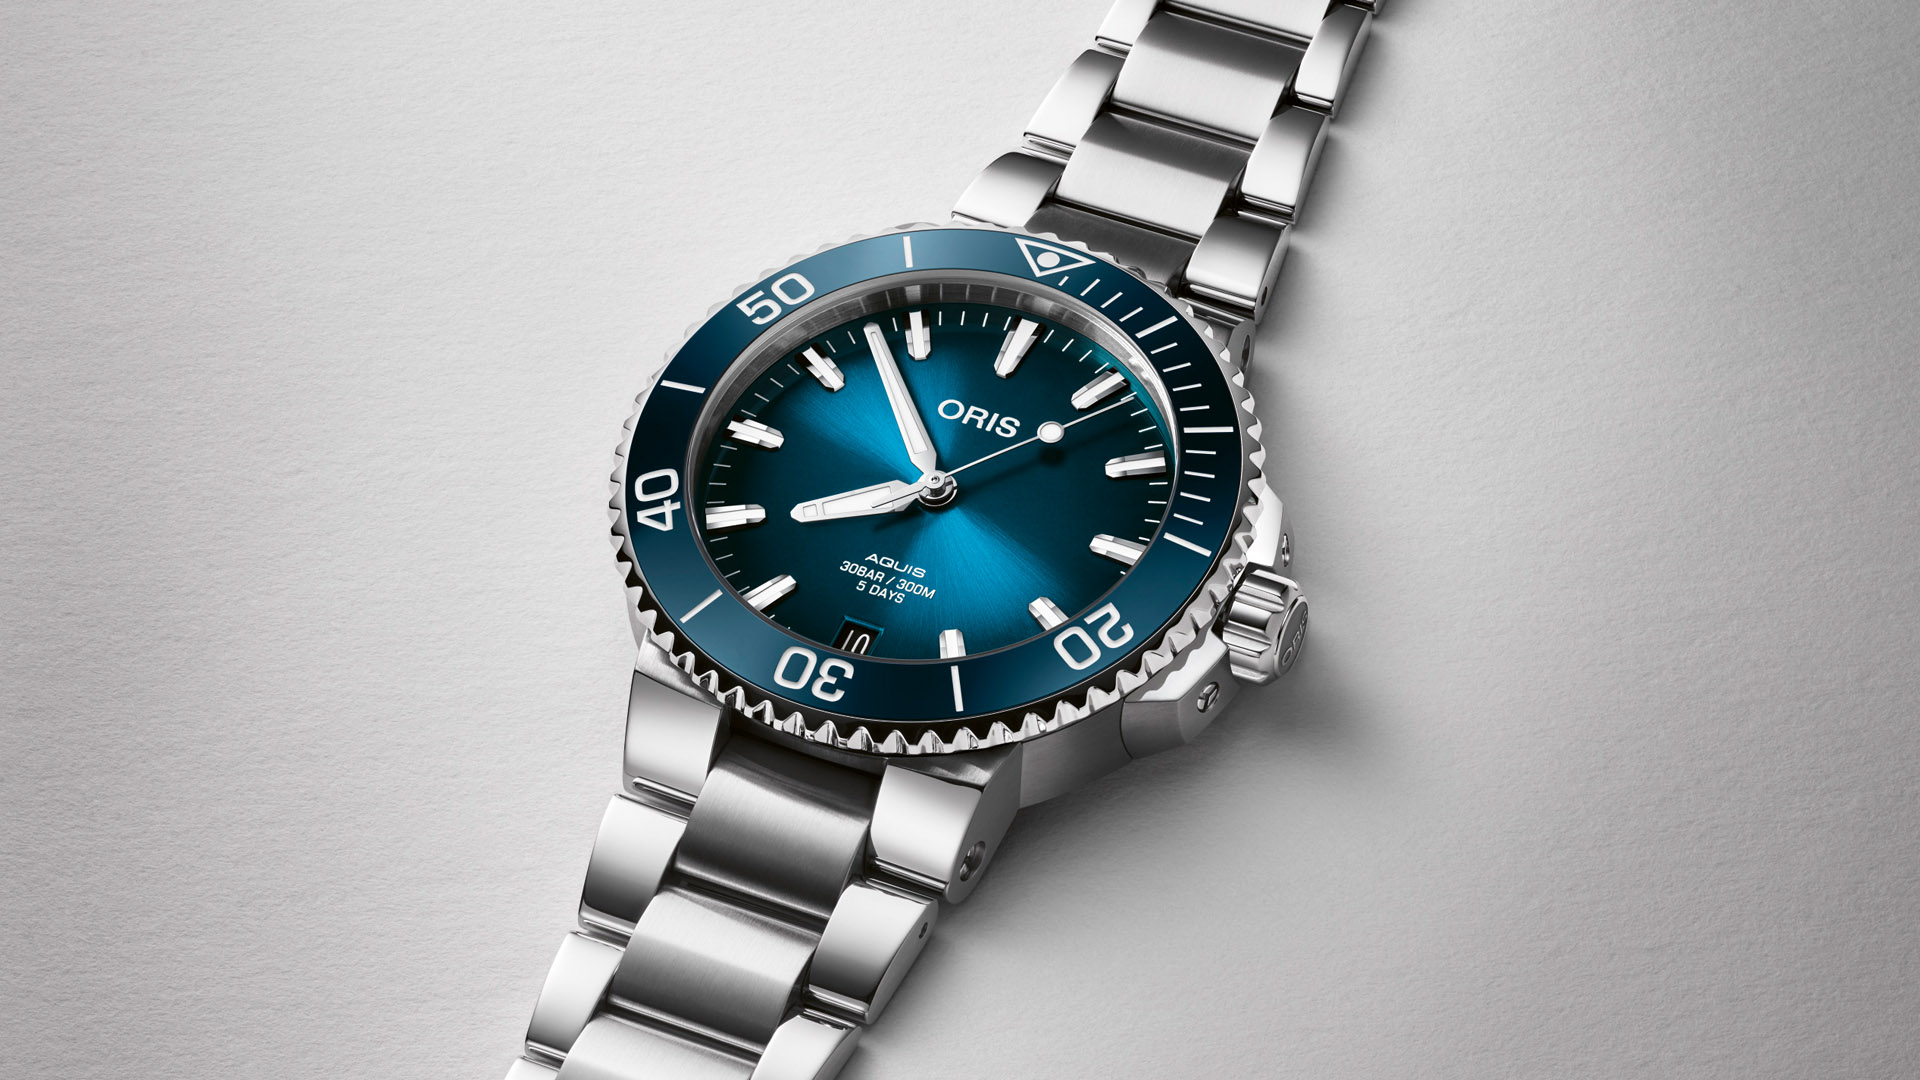 Oris Aquis Date Calibre 400 offers outstanding accuracy